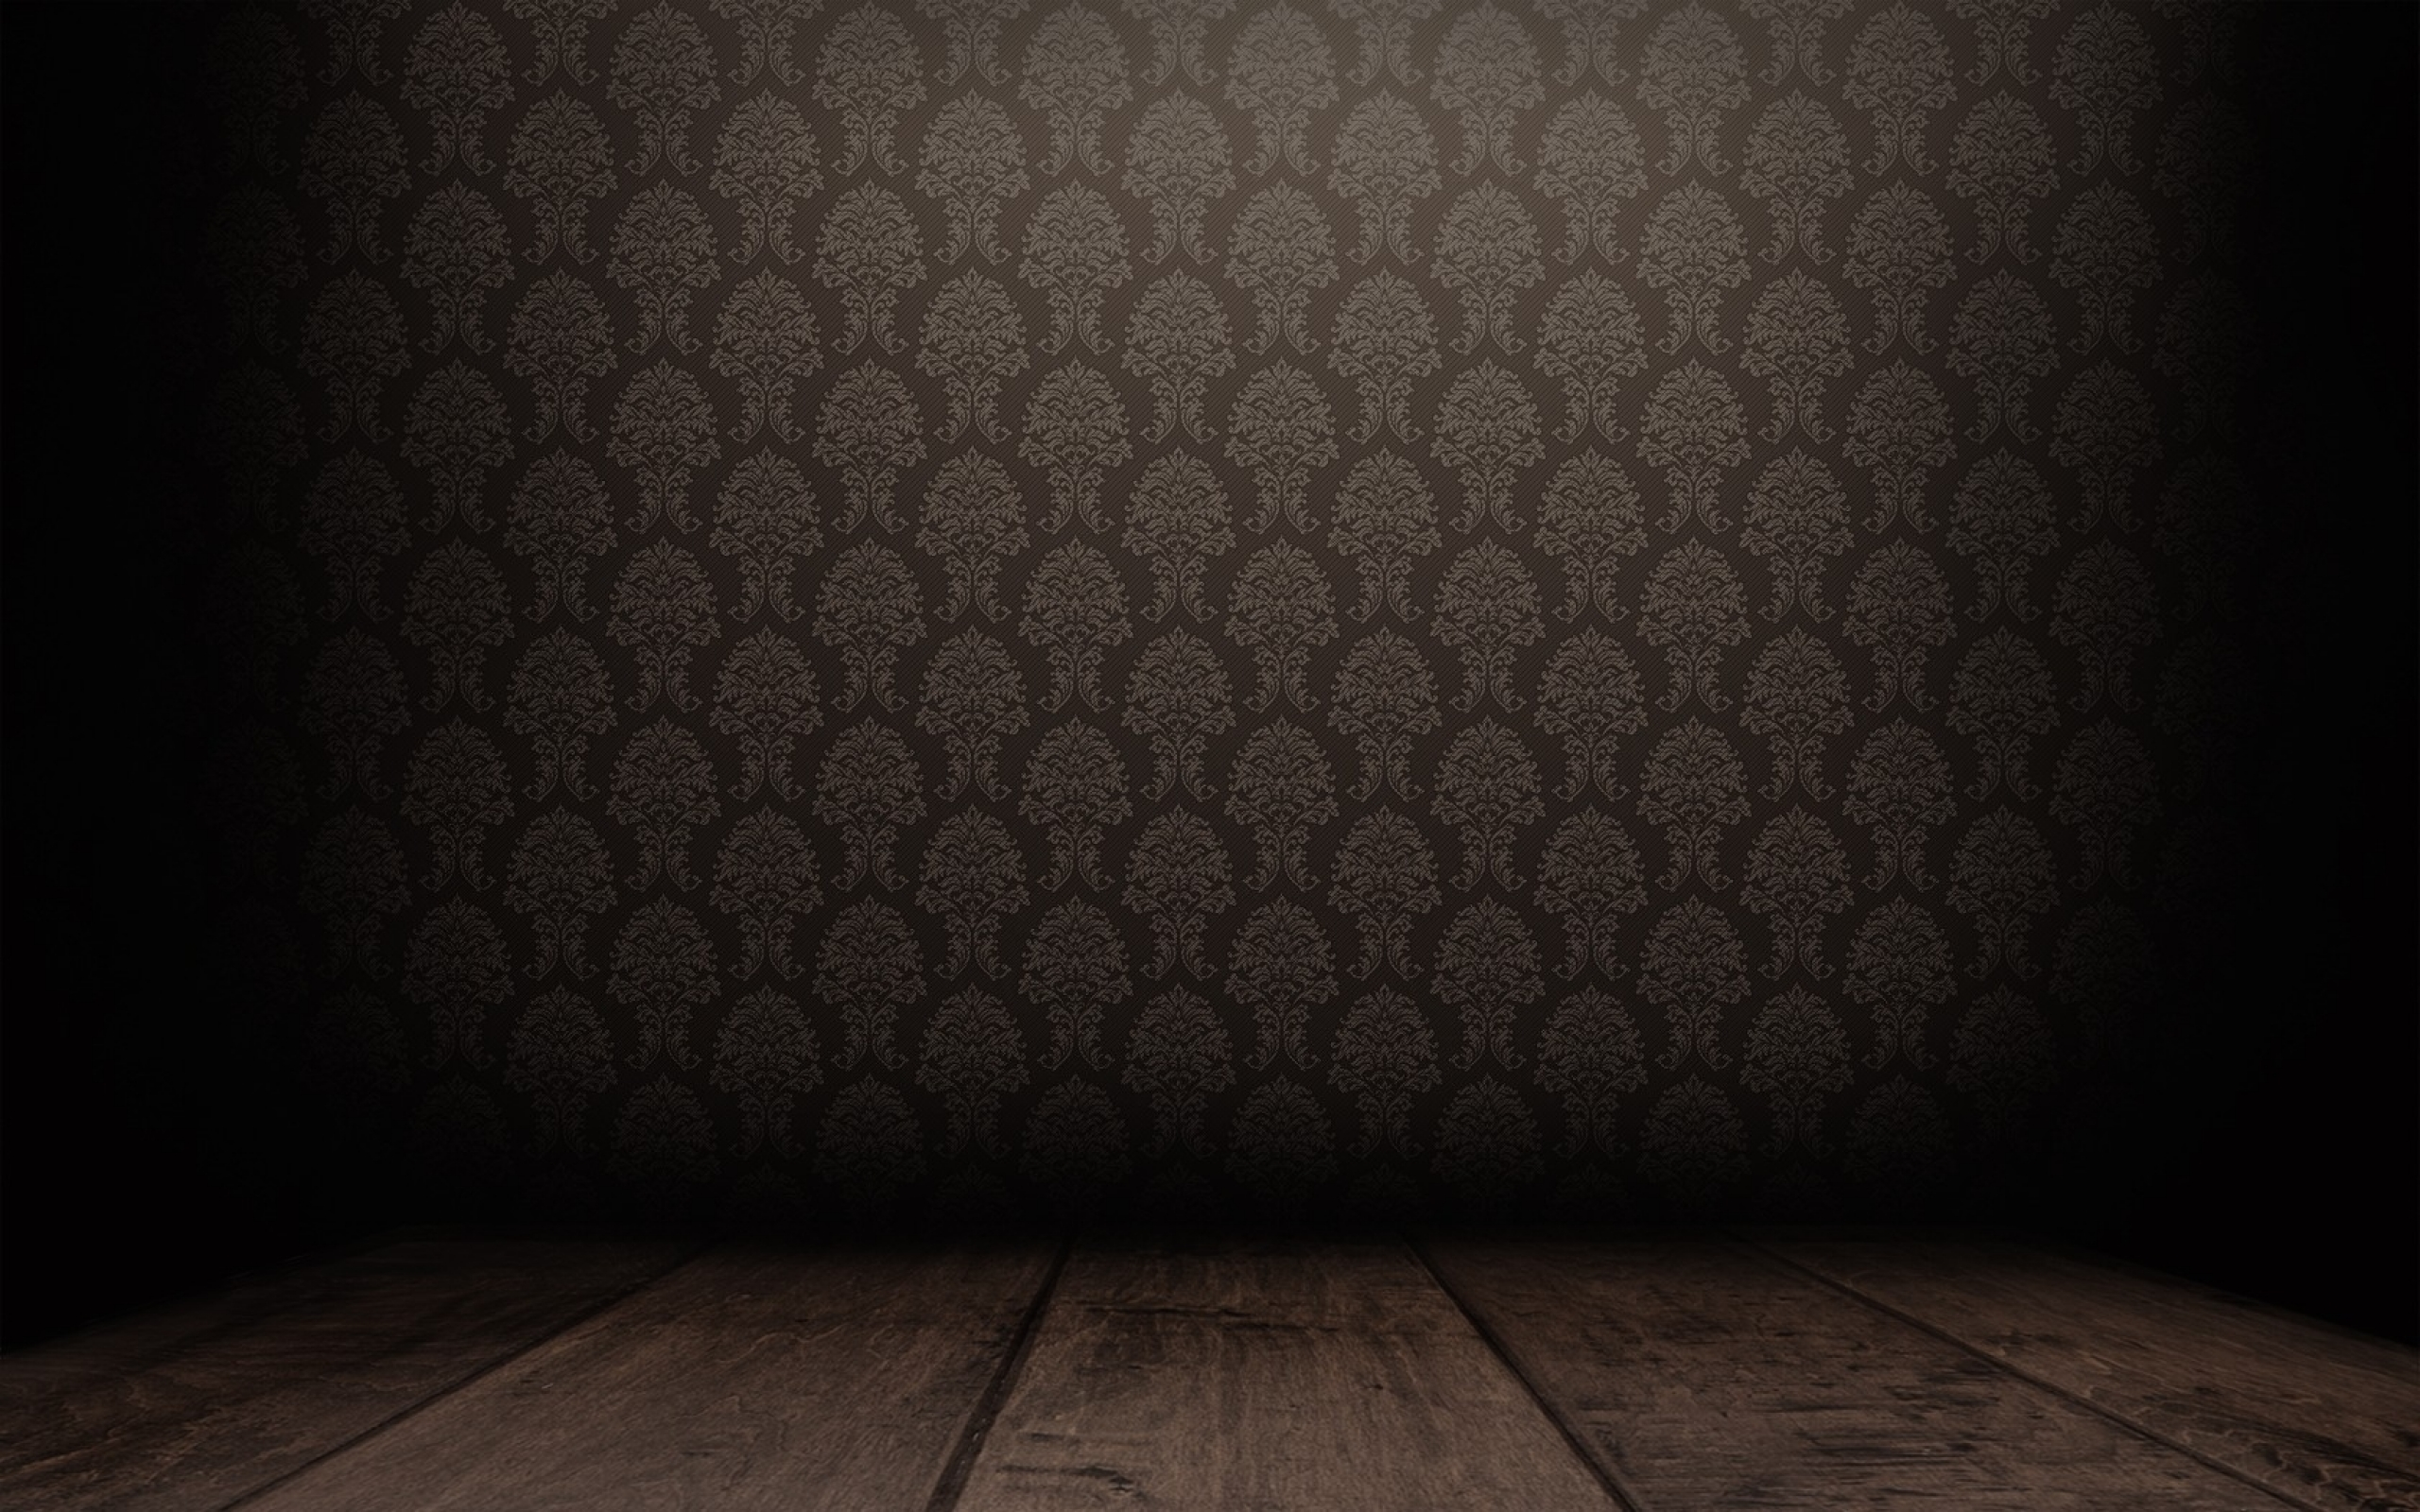 backgrounds darker depth of field photomanipulatio Wallpaper download 2560x1600